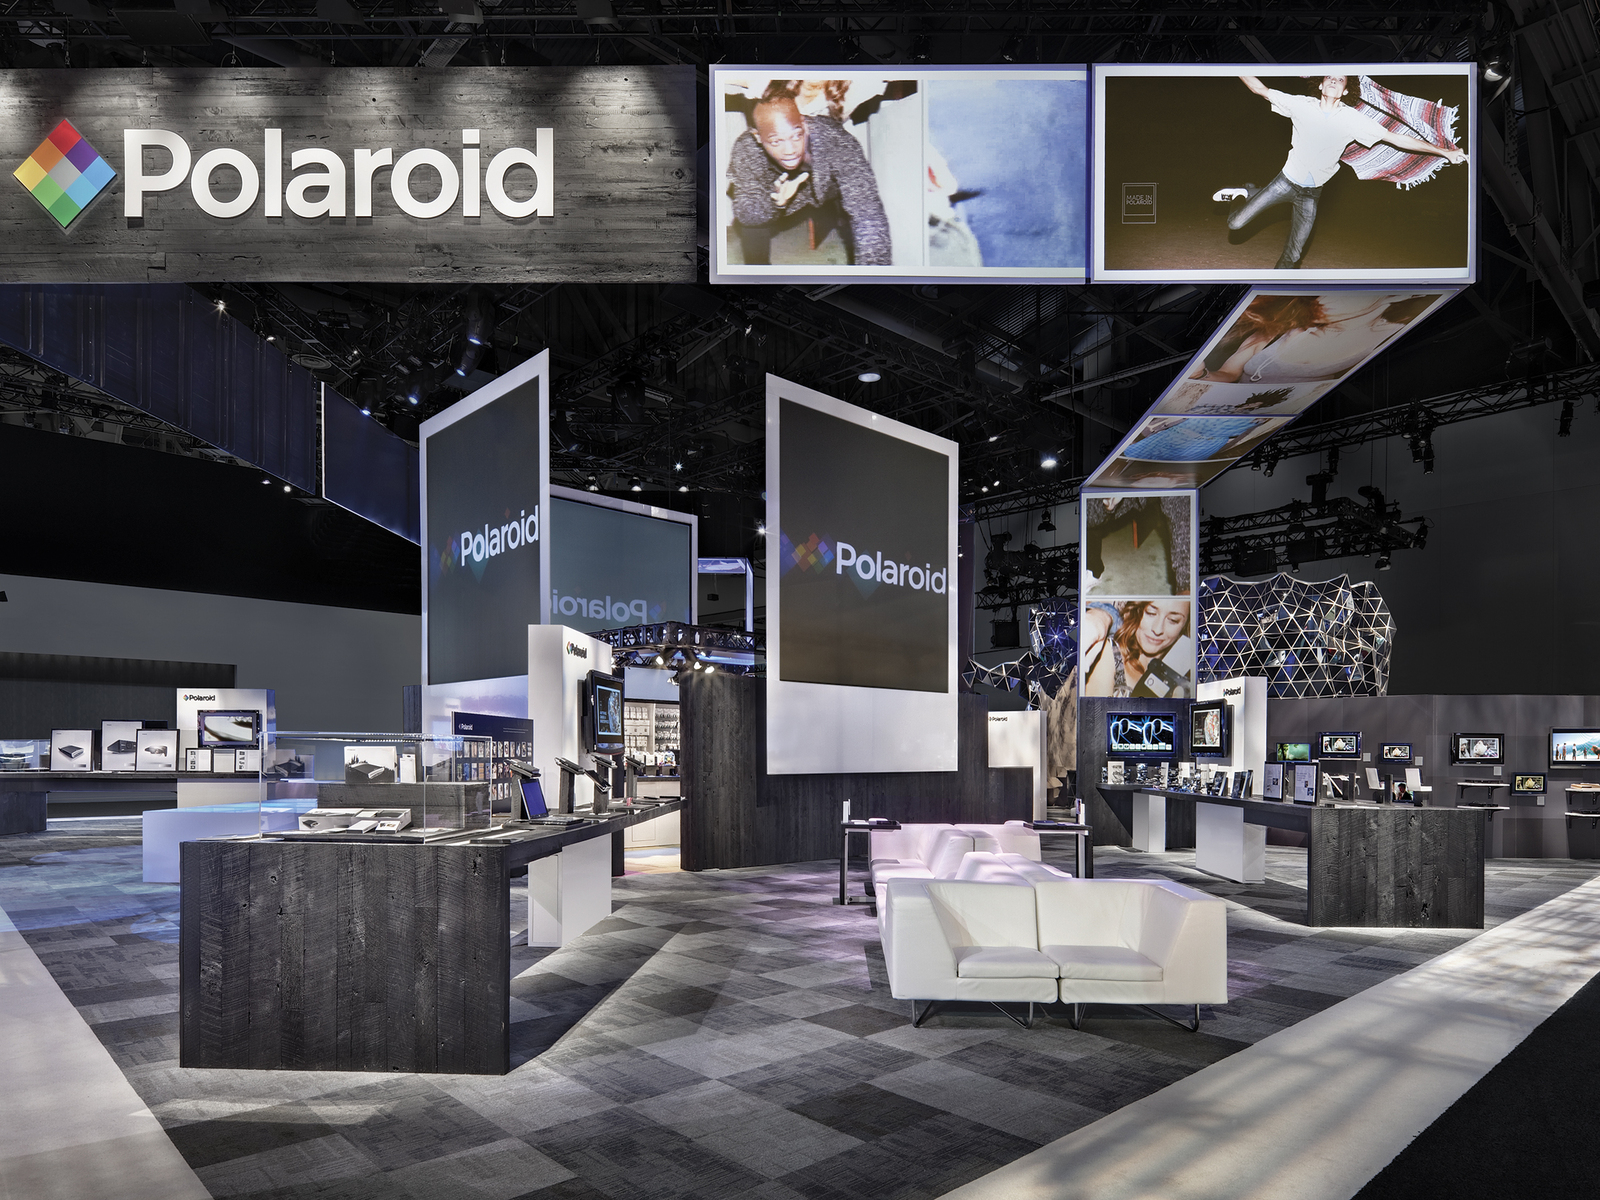 polaroid custom trade show exhibit - Photo Booth Design Ideas